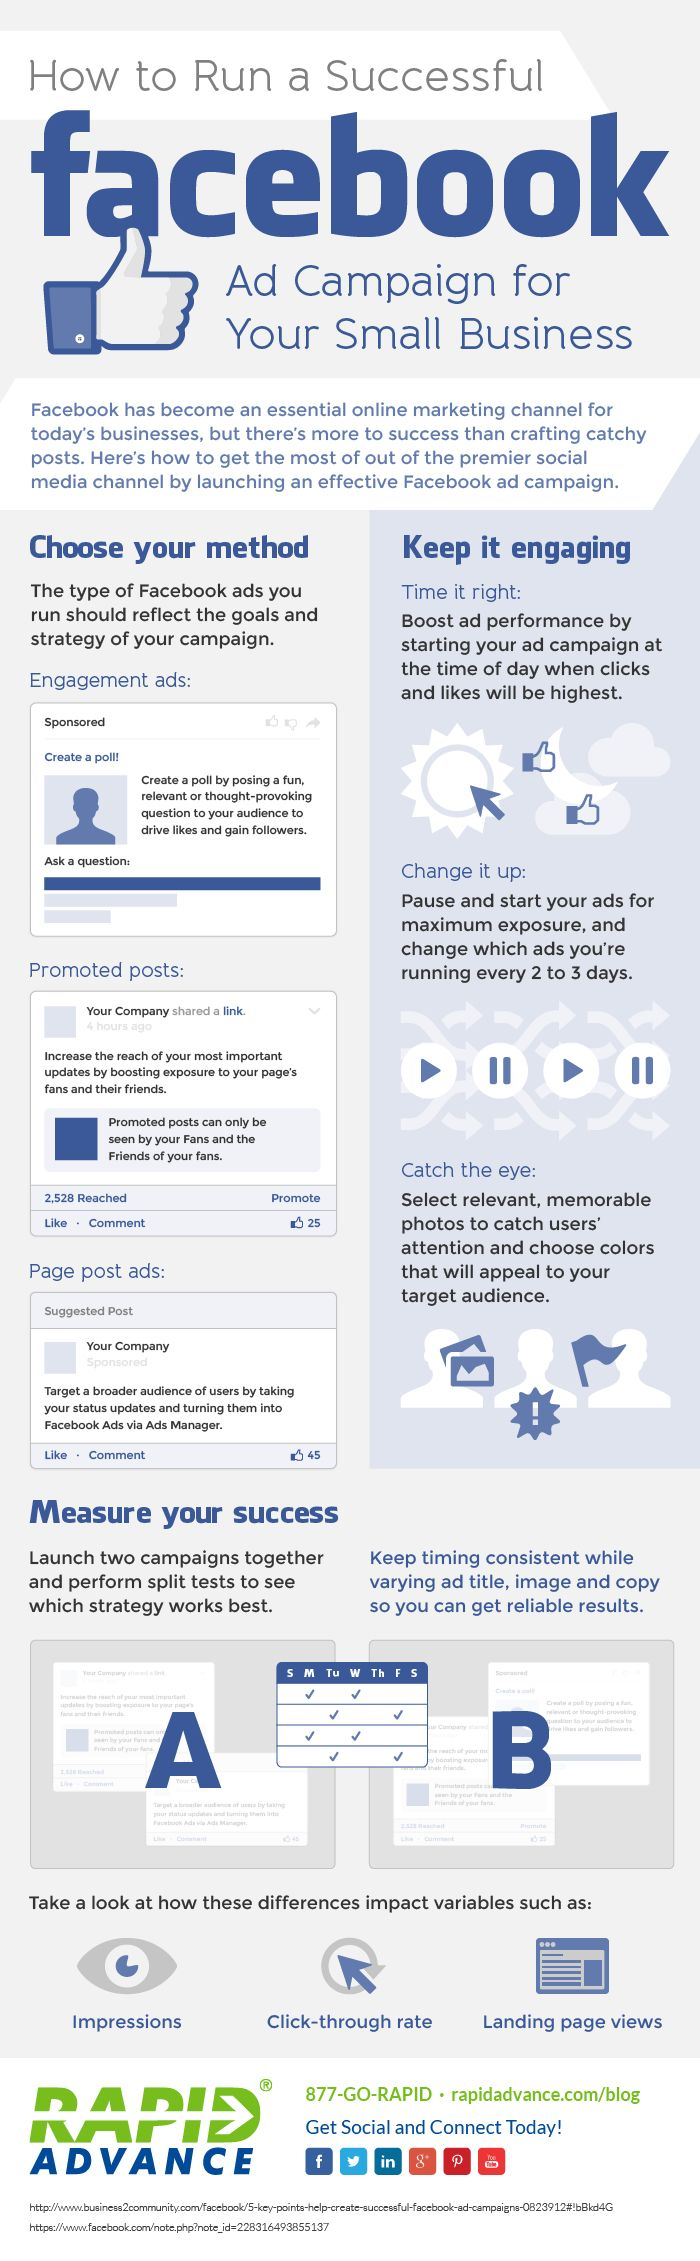 How to Run a Successful #Facebook Ad Campaign for Your Small Business - #socialmedia #Infographic